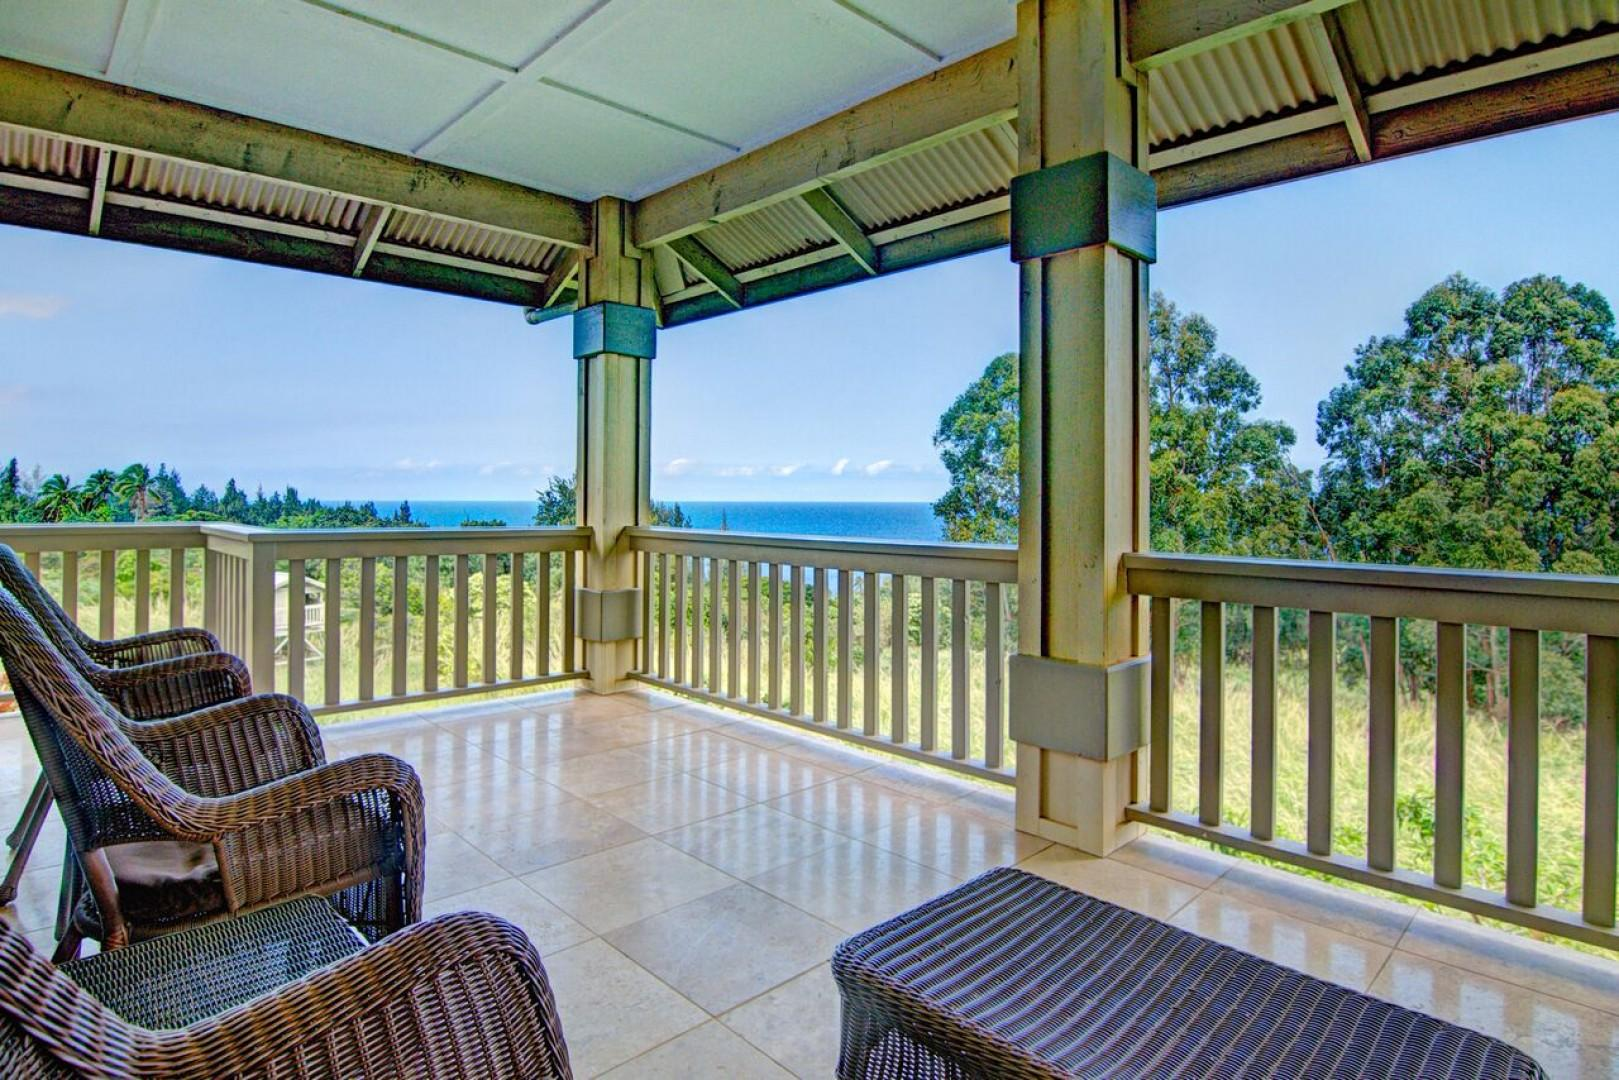 The back lanai is the perfect spot to sit and enjoy the ocean views!